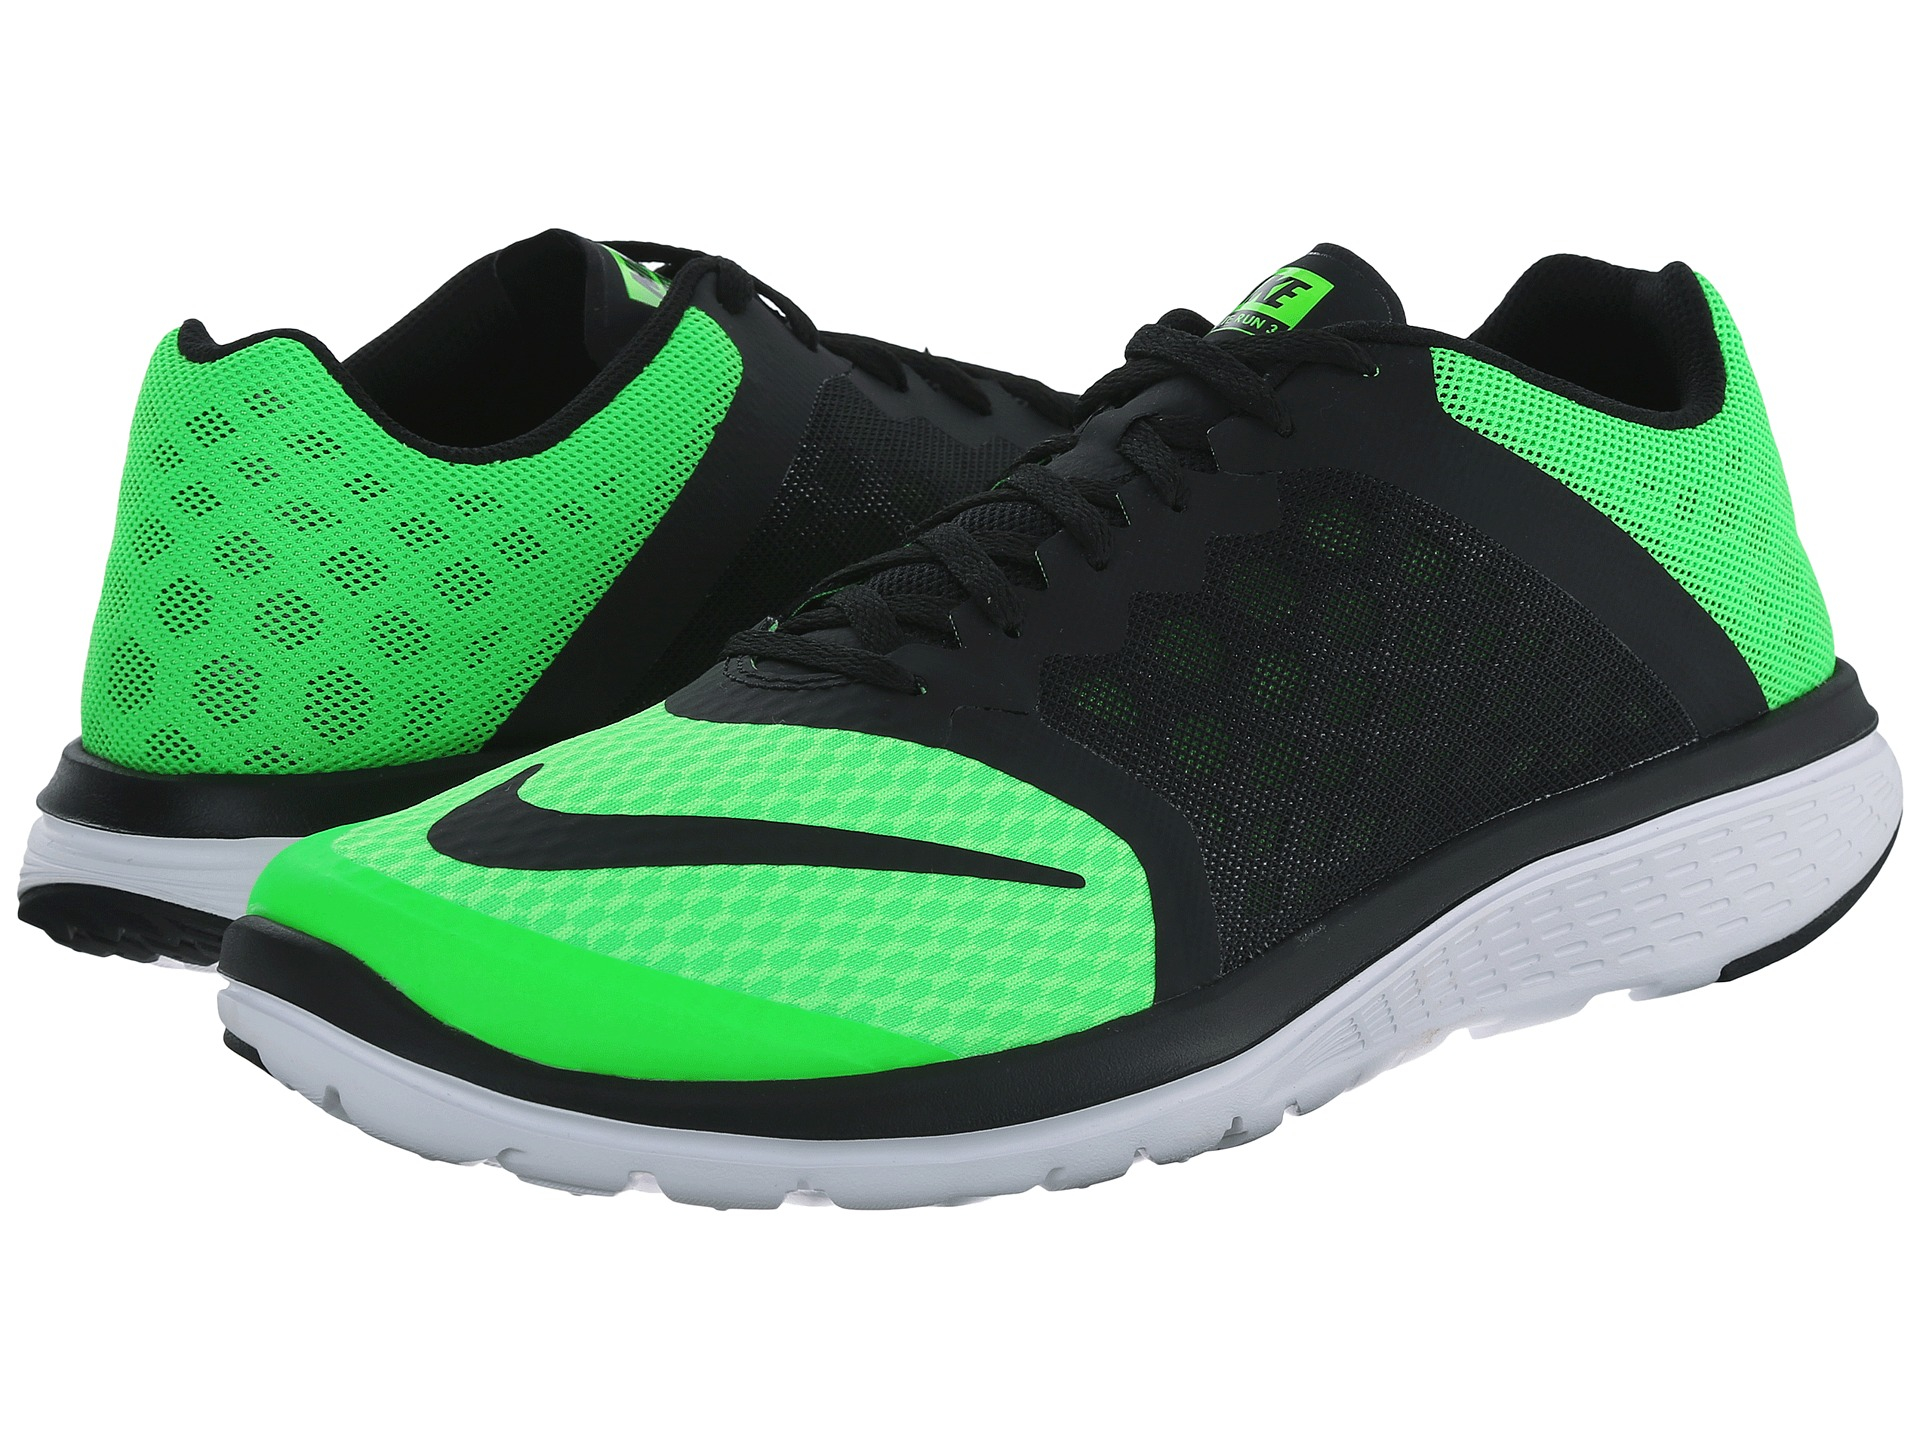 Cheap Nike Free Synthetic Athletic Shoes for Men